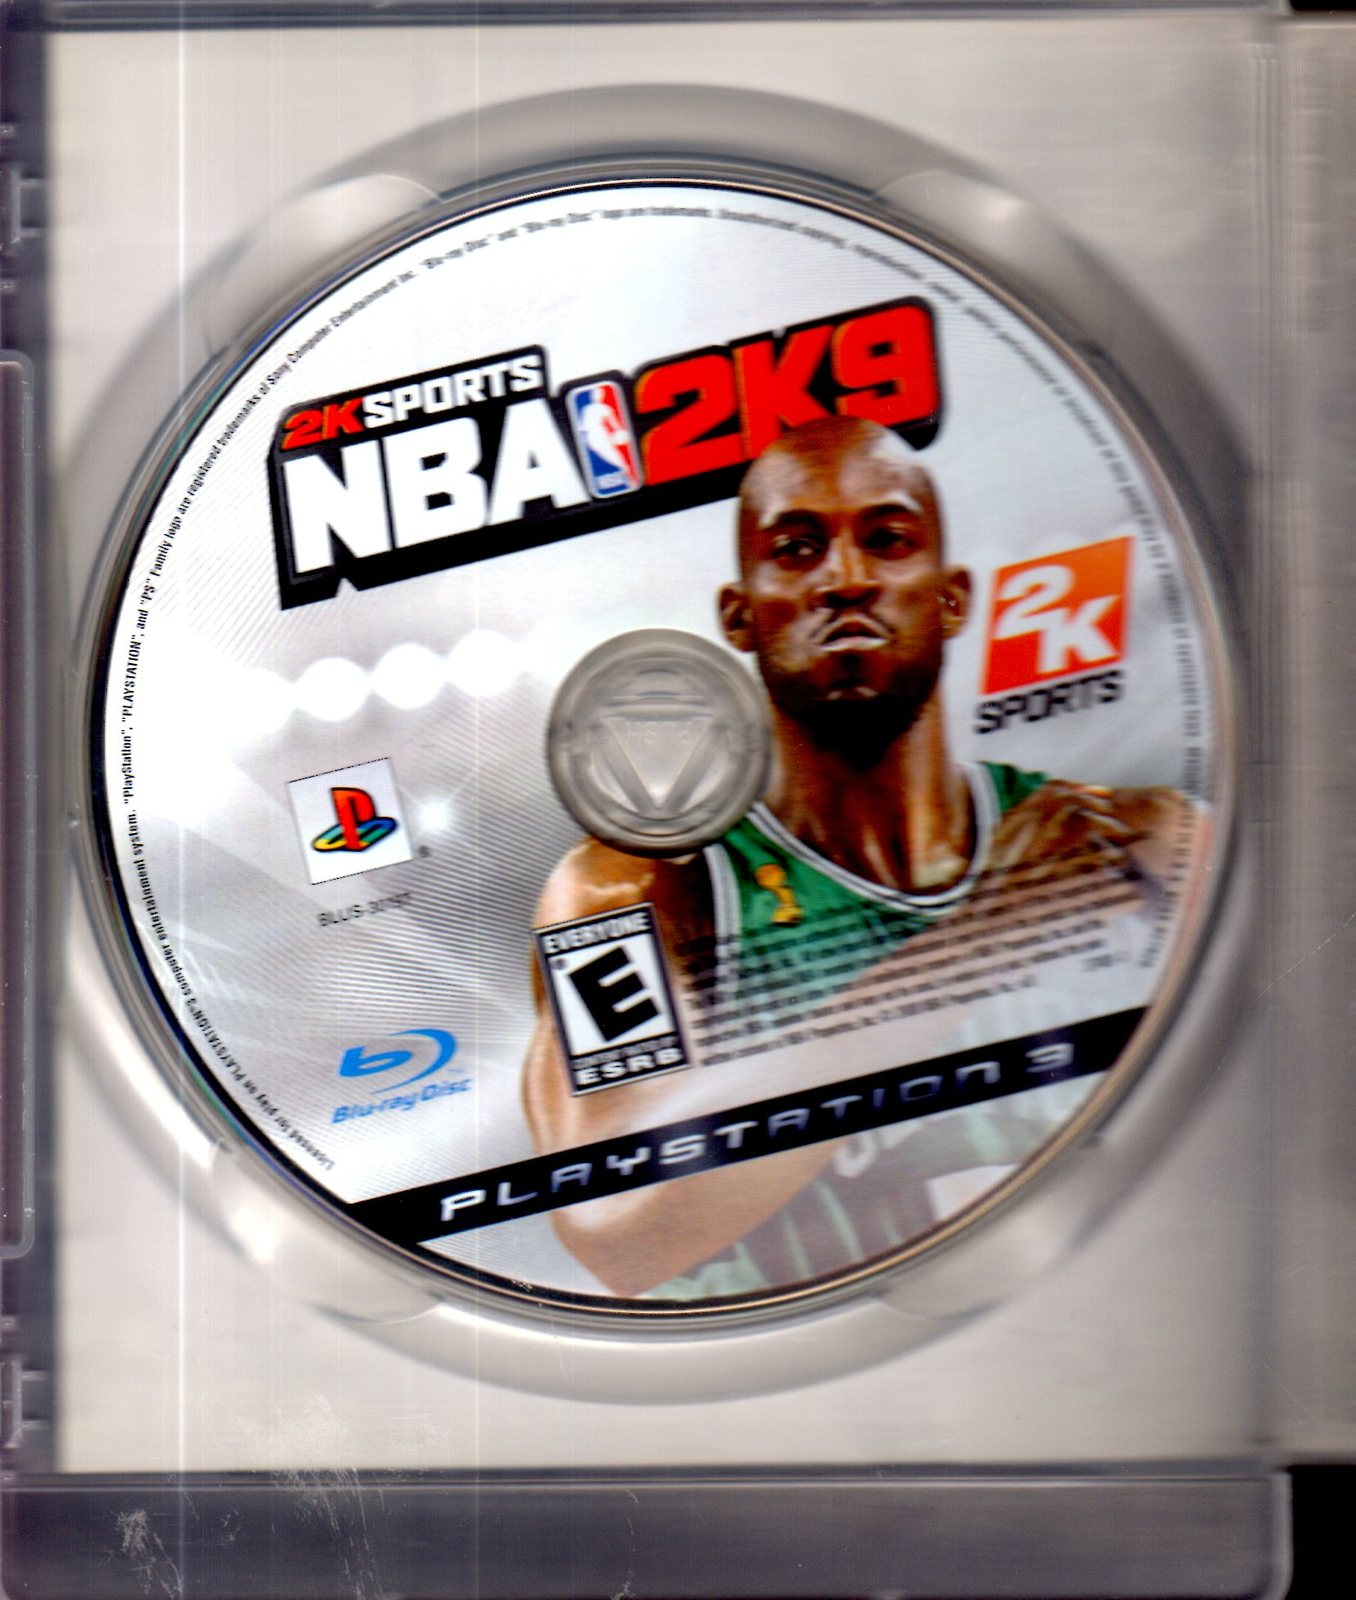 NBA 2K9 Playstation 3 (2K Sports)